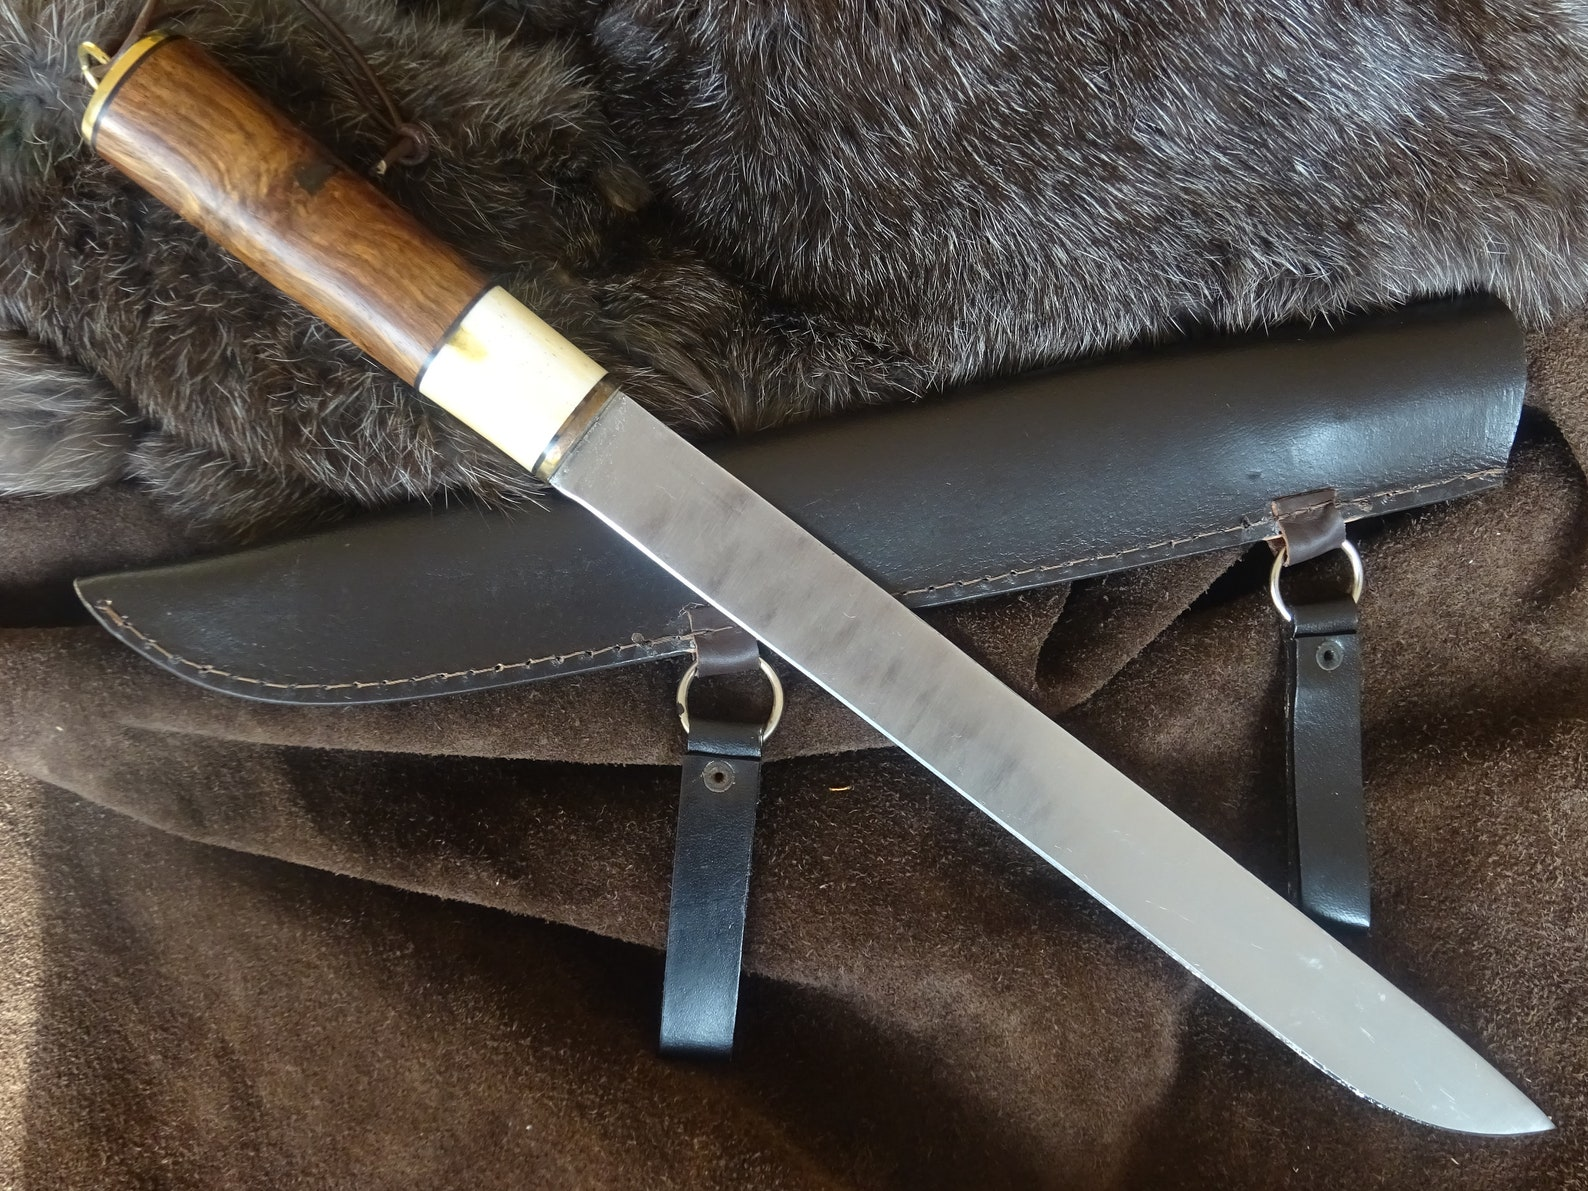 Large sax knife with sharp blade and handle made of wood